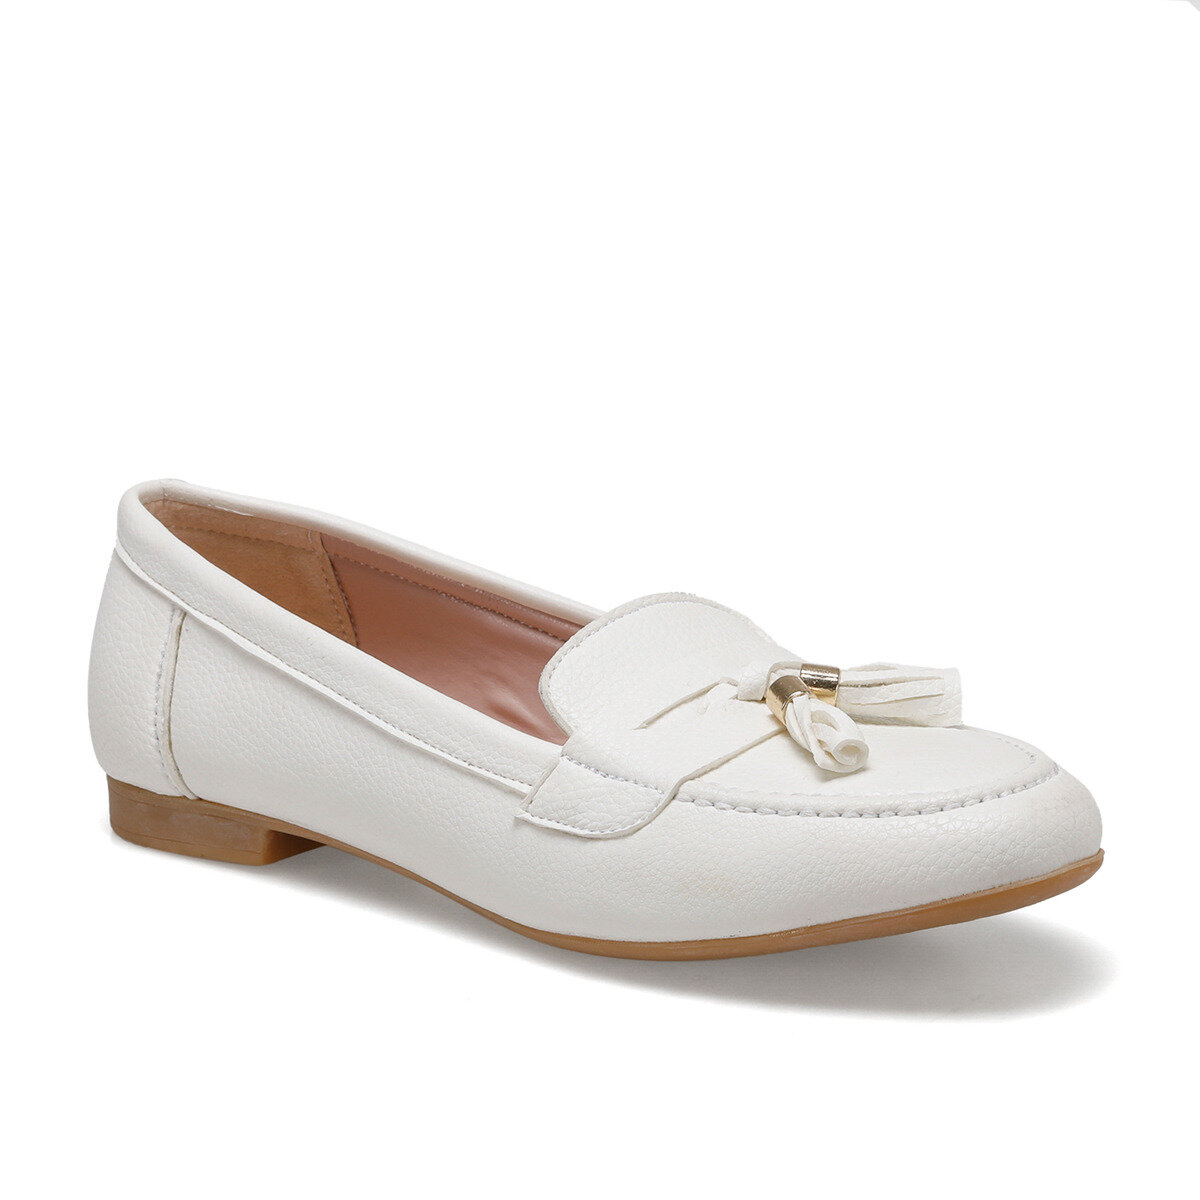 FLO DS20051 White Women Loafer Shoes Miss F